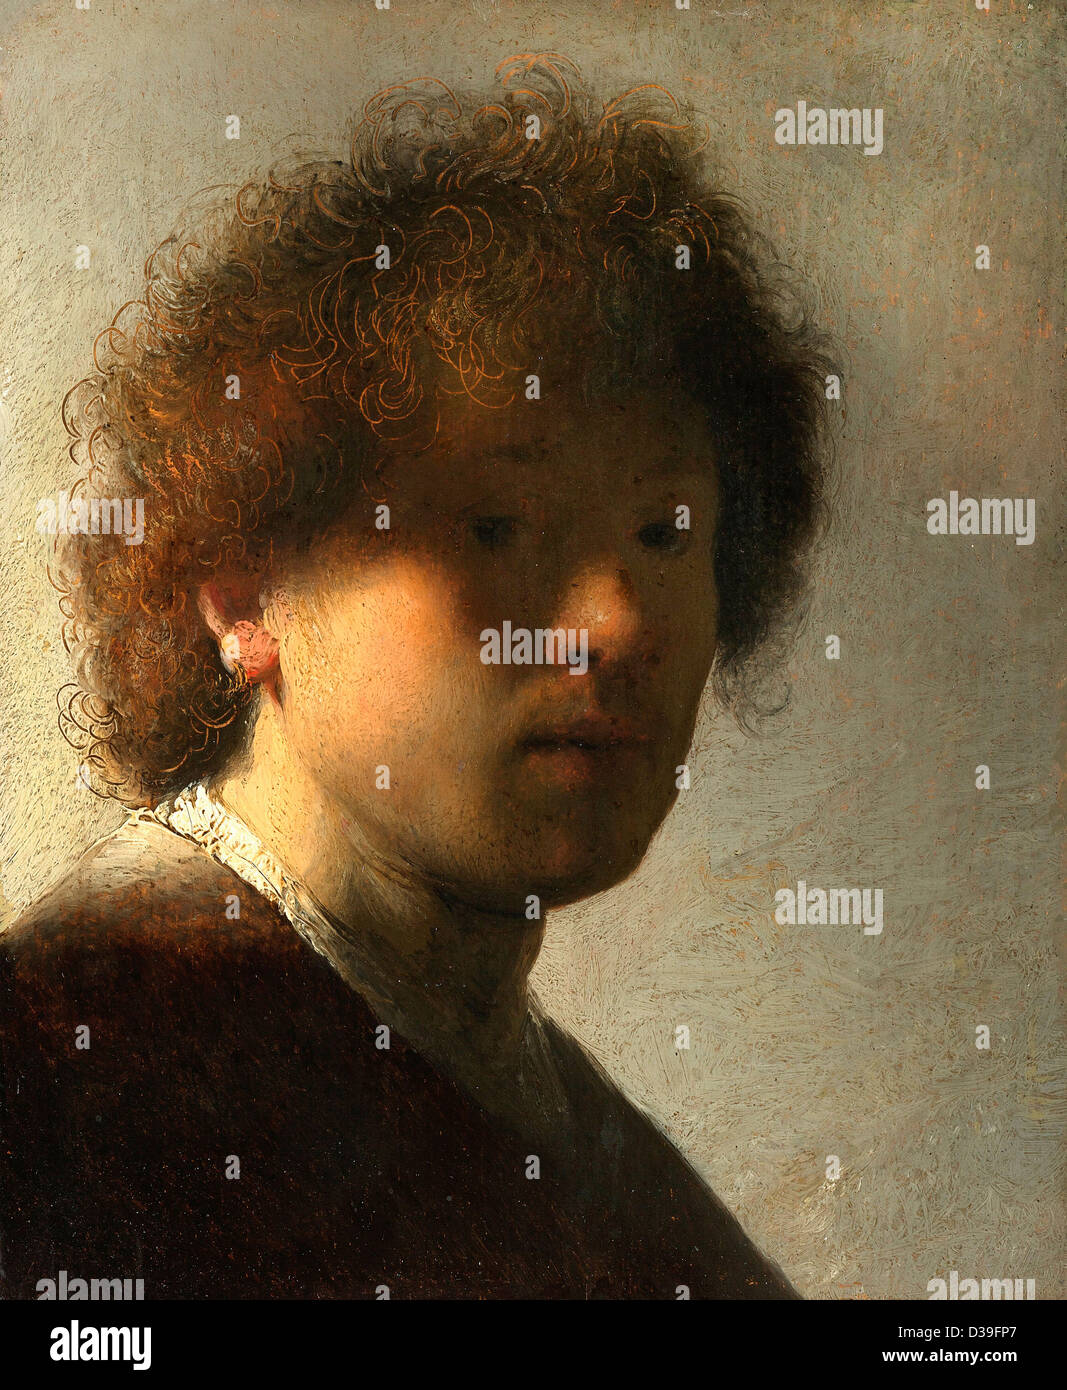 Rembrandt van Rijn, Self Portrait at an Early Age. 1629 Oil on panel. Baroque. Rijksmuseum Amsterdam. - Stock Image